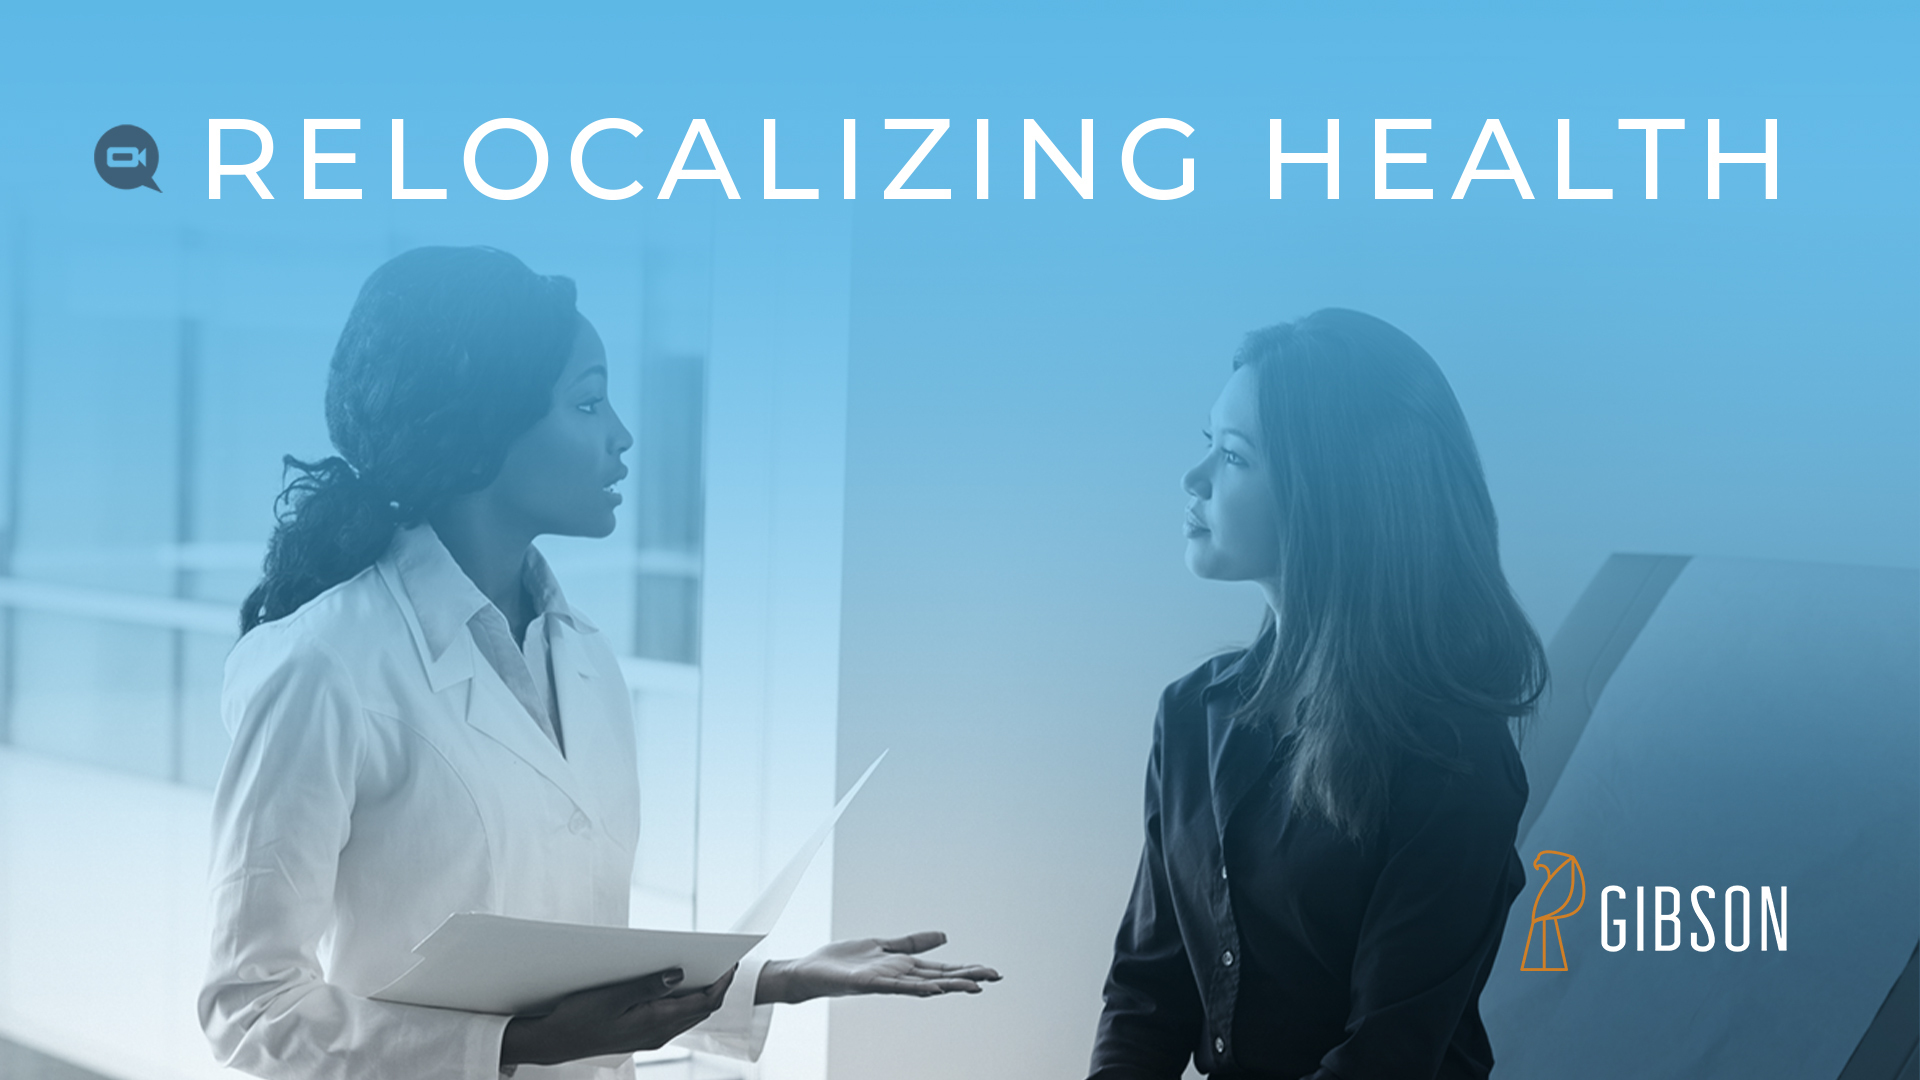 Relocalizing Health